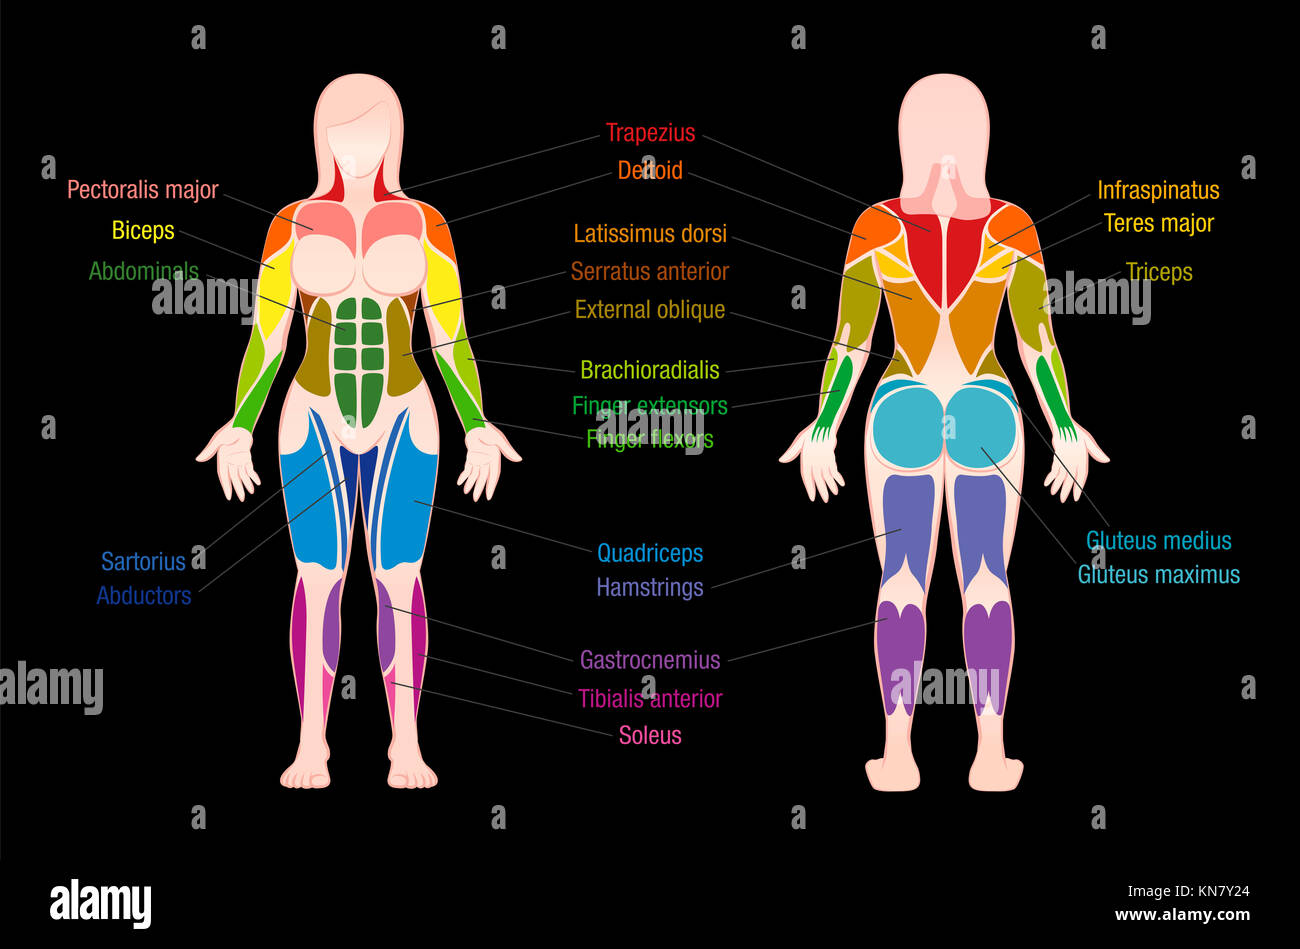 Muscle Chart With Most Important Muscles Of The Female Body